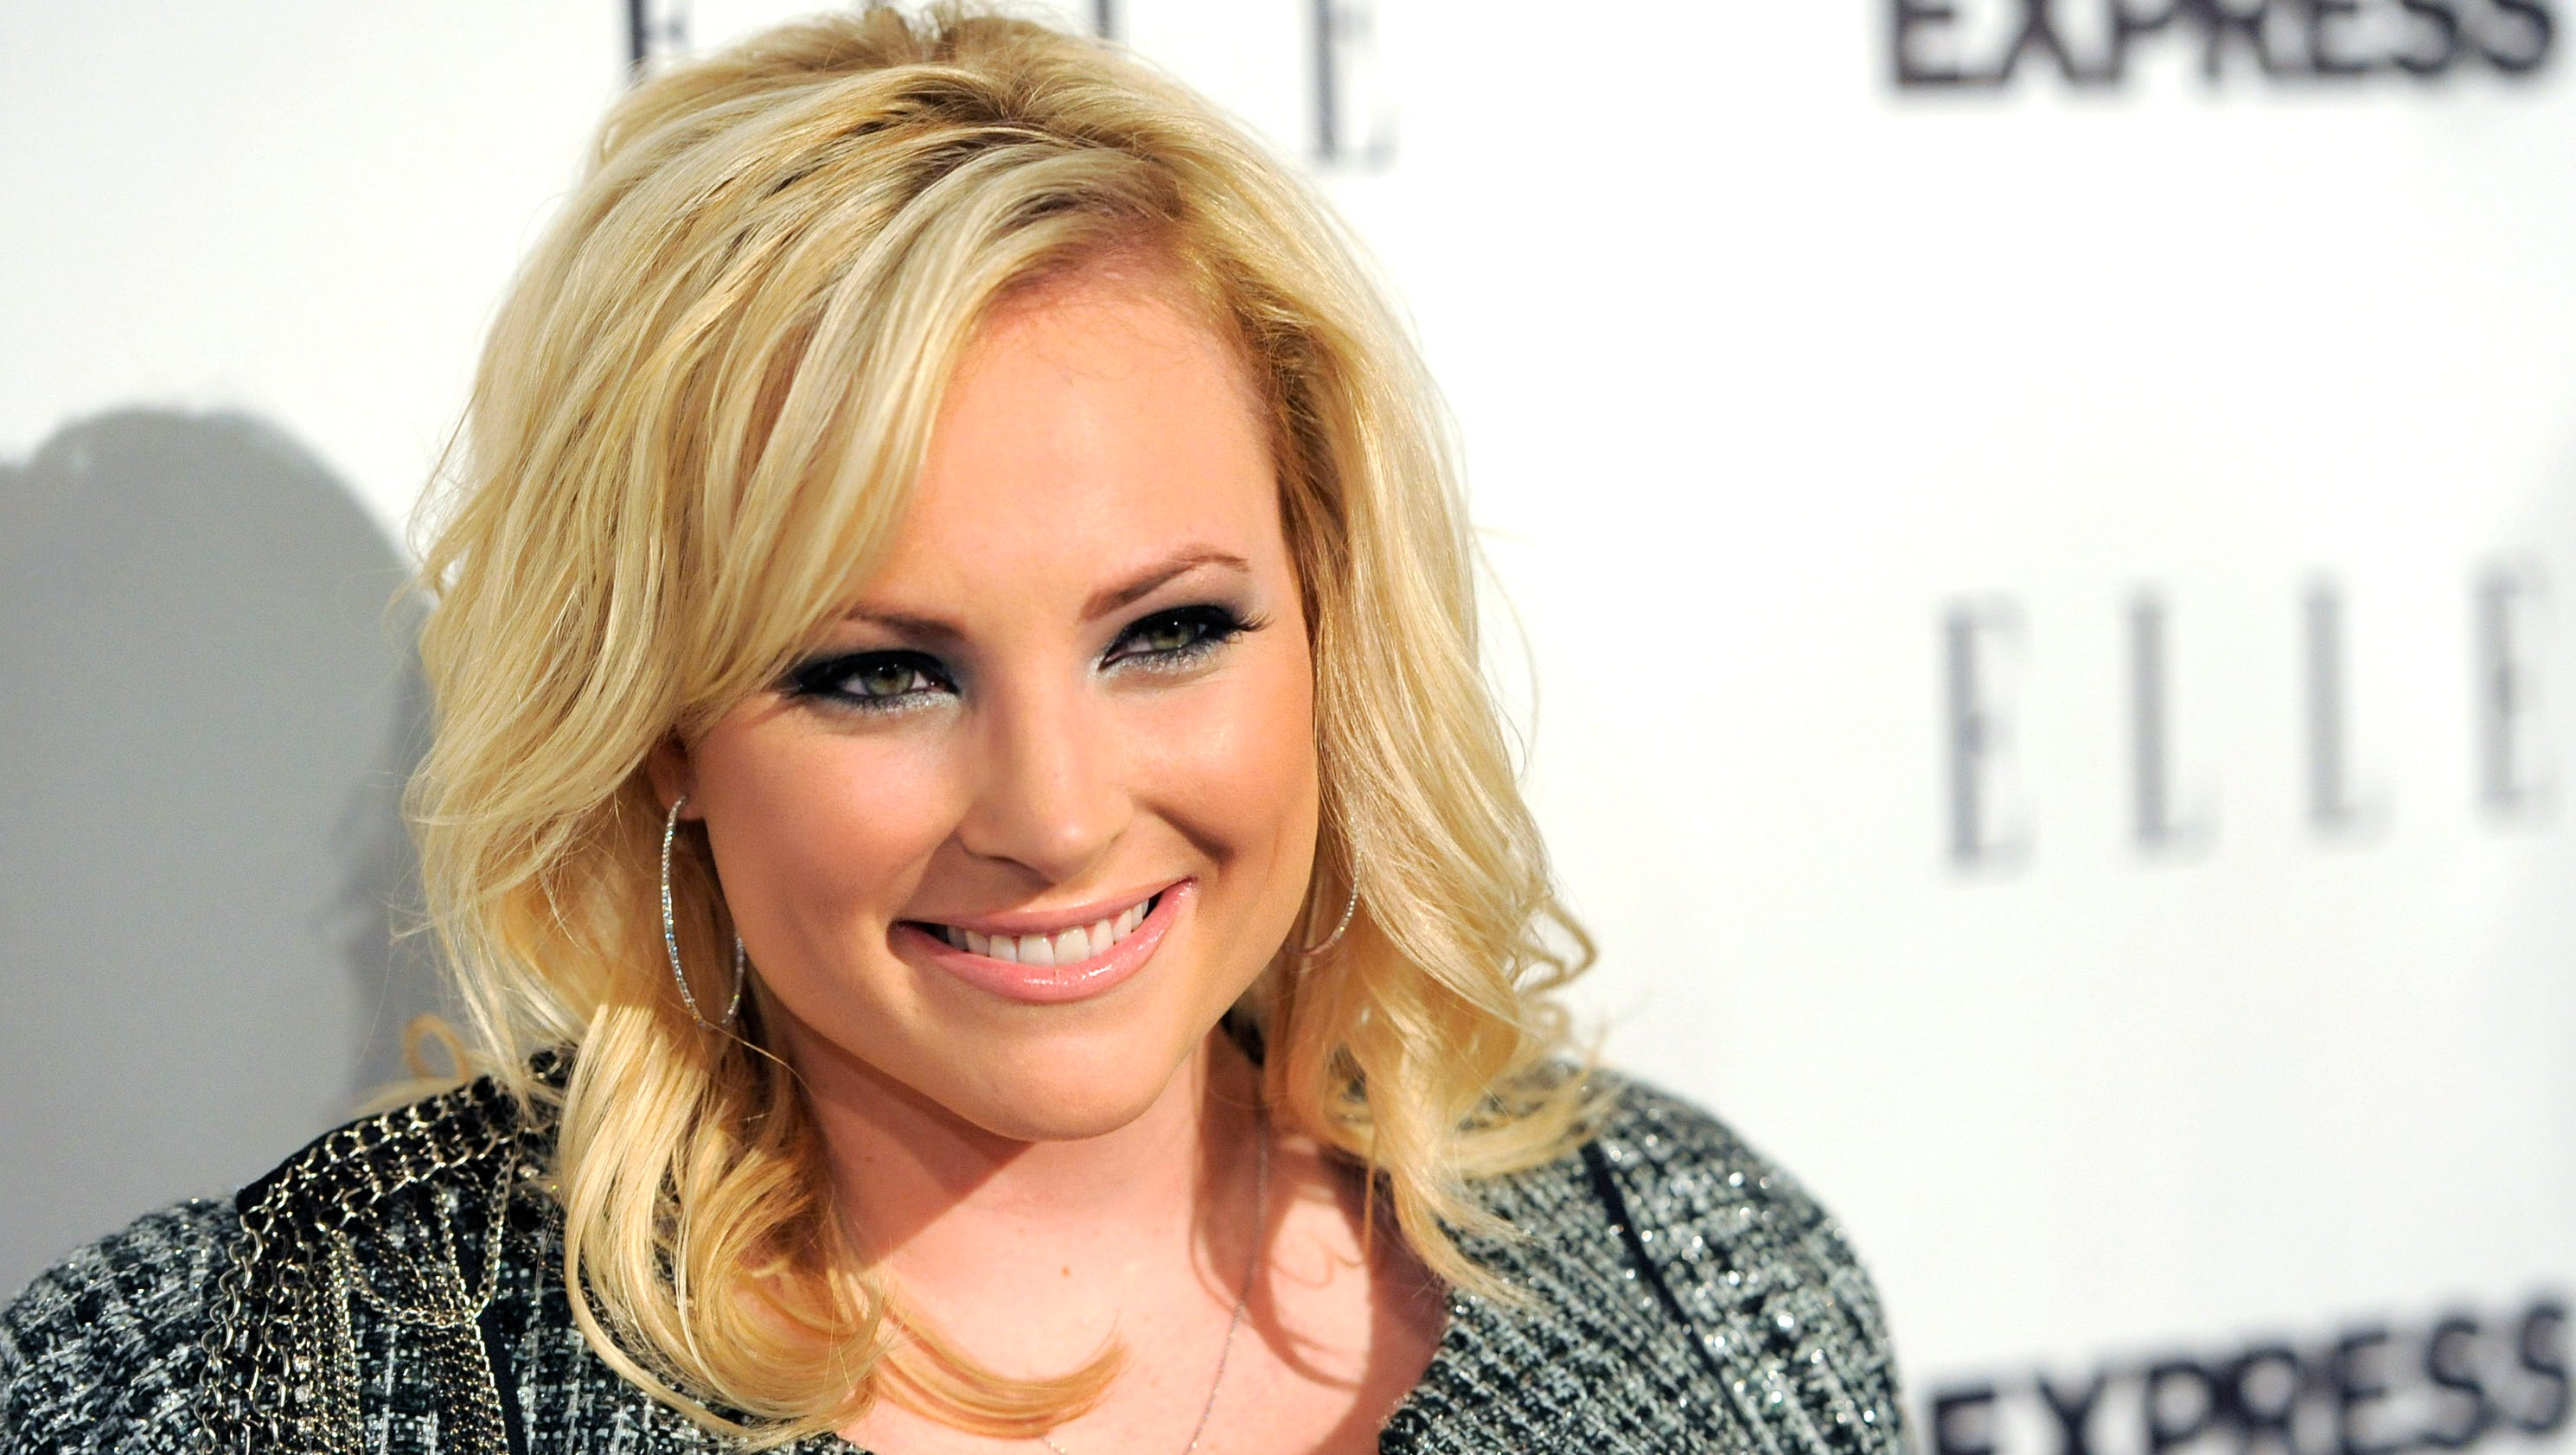 What Liz Cheney Doesnt Know >> Meghan McCain and Liz Cheney brawl on Twitter over torture comments